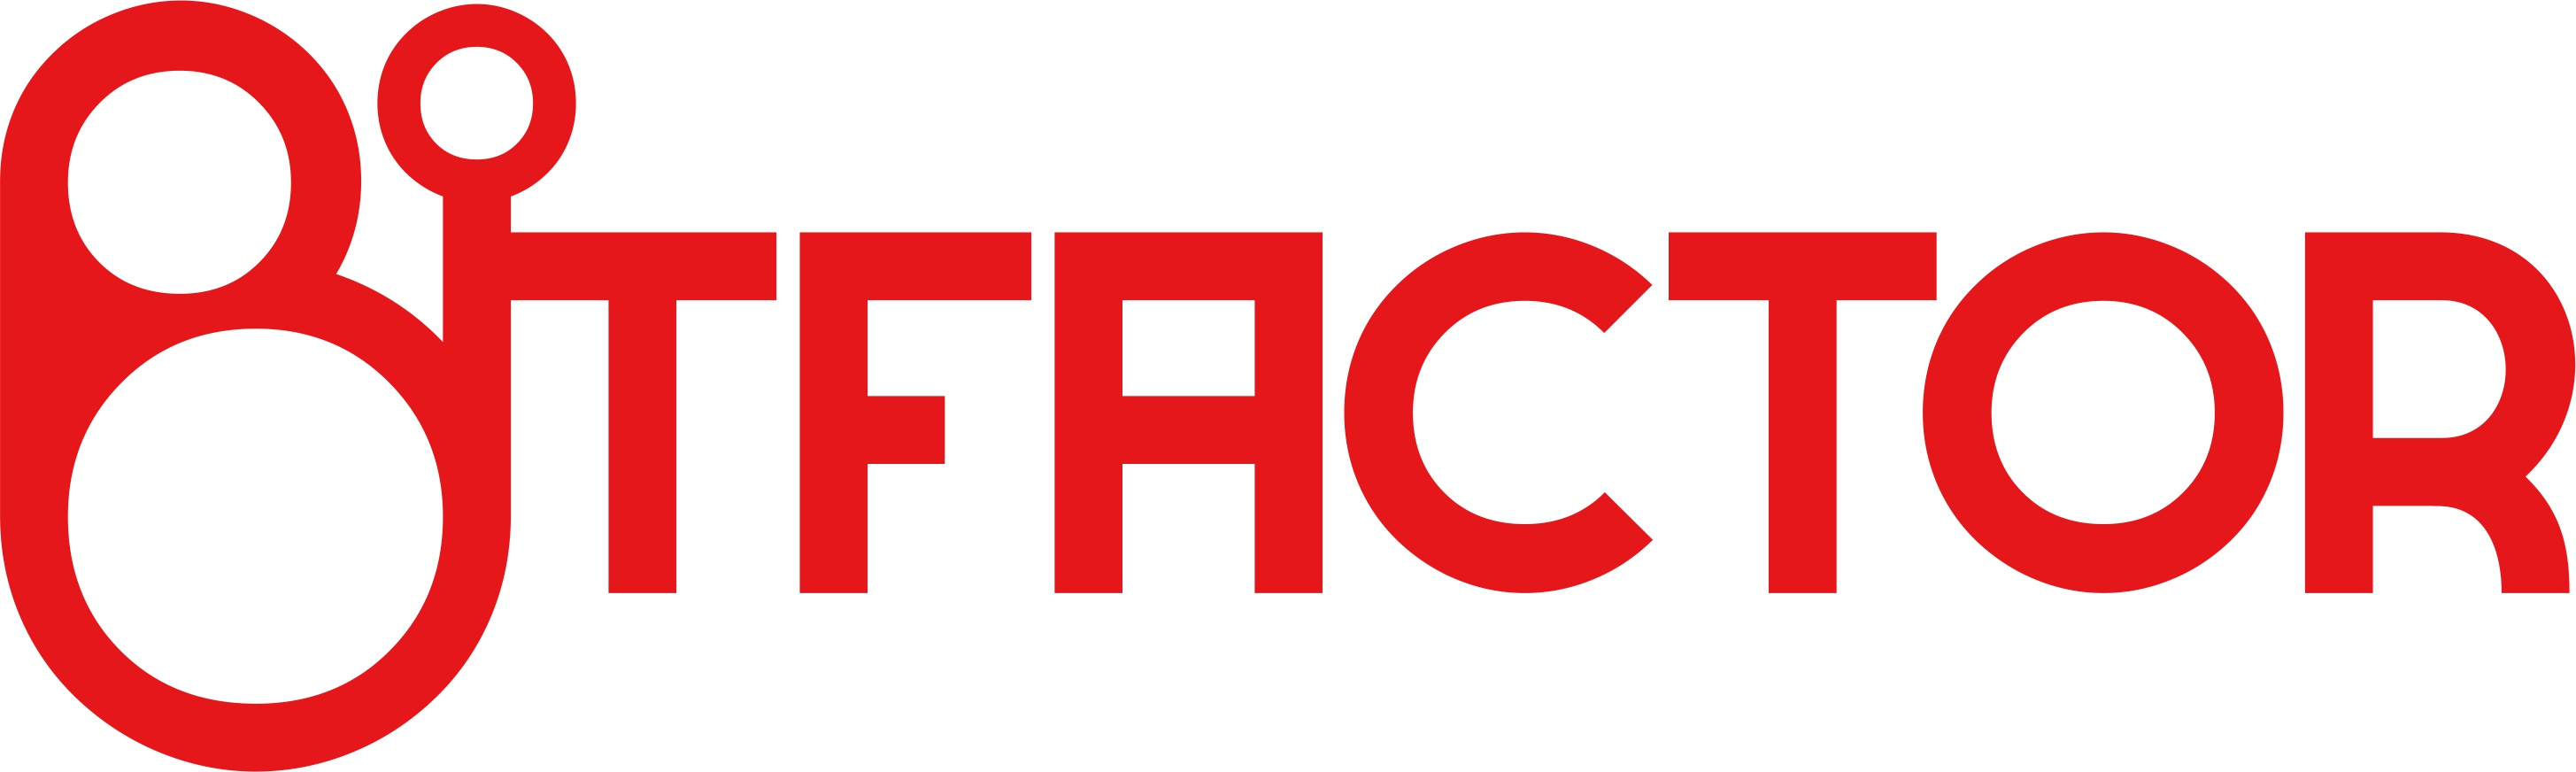 BITFACTOR-logo_red_jpeg